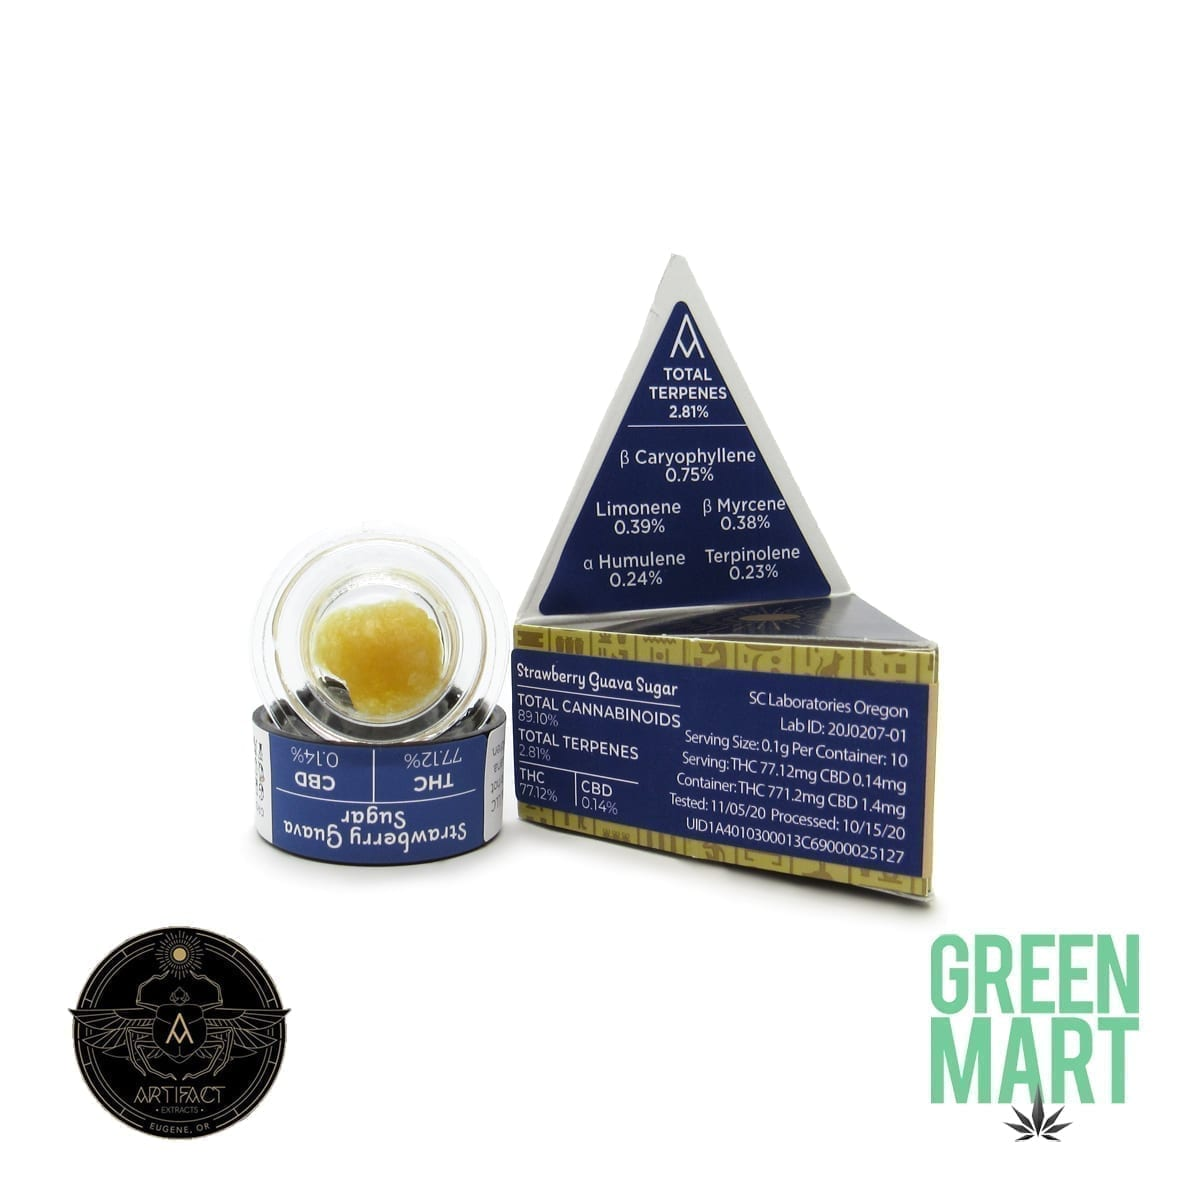 Artifact Extracts - Strawberry Guava Sugar